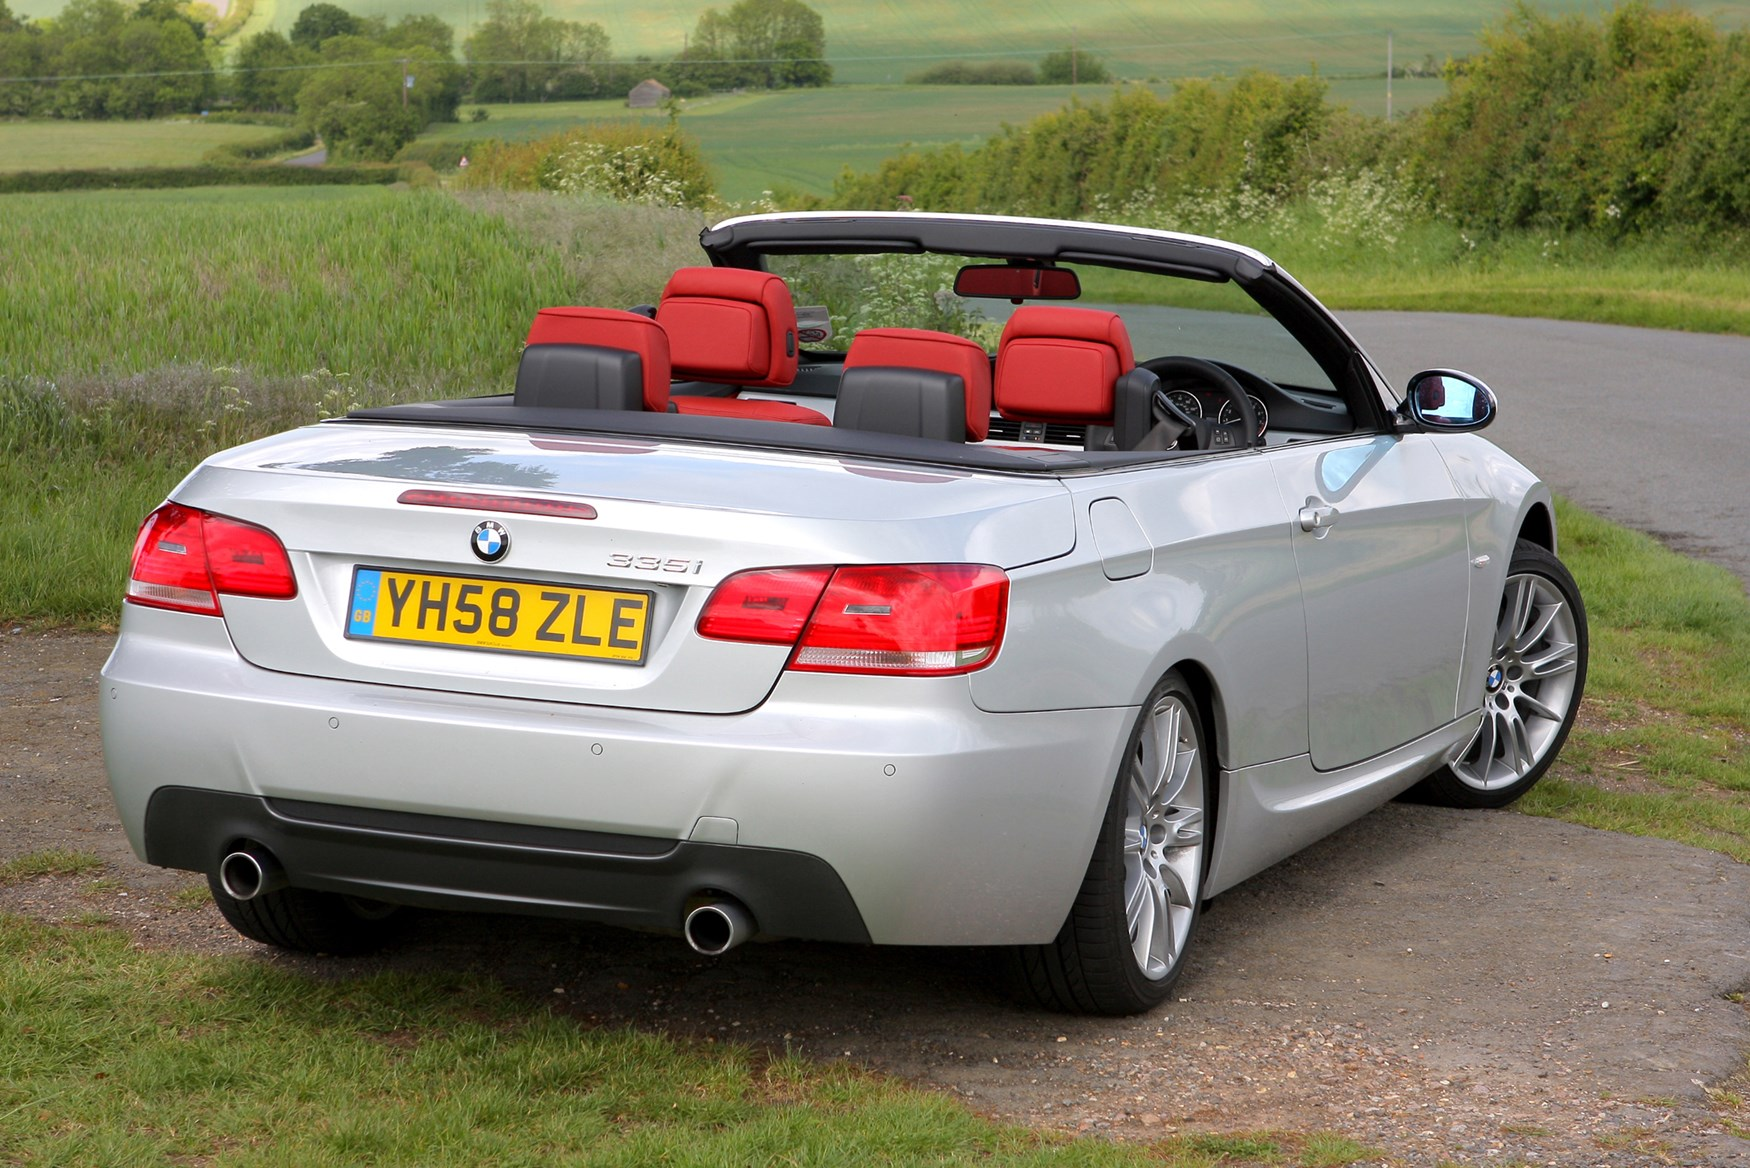 Used Bmw 5 Series Review >> BMW 3-Series Convertible Review (2007 - 2013) | Parkers